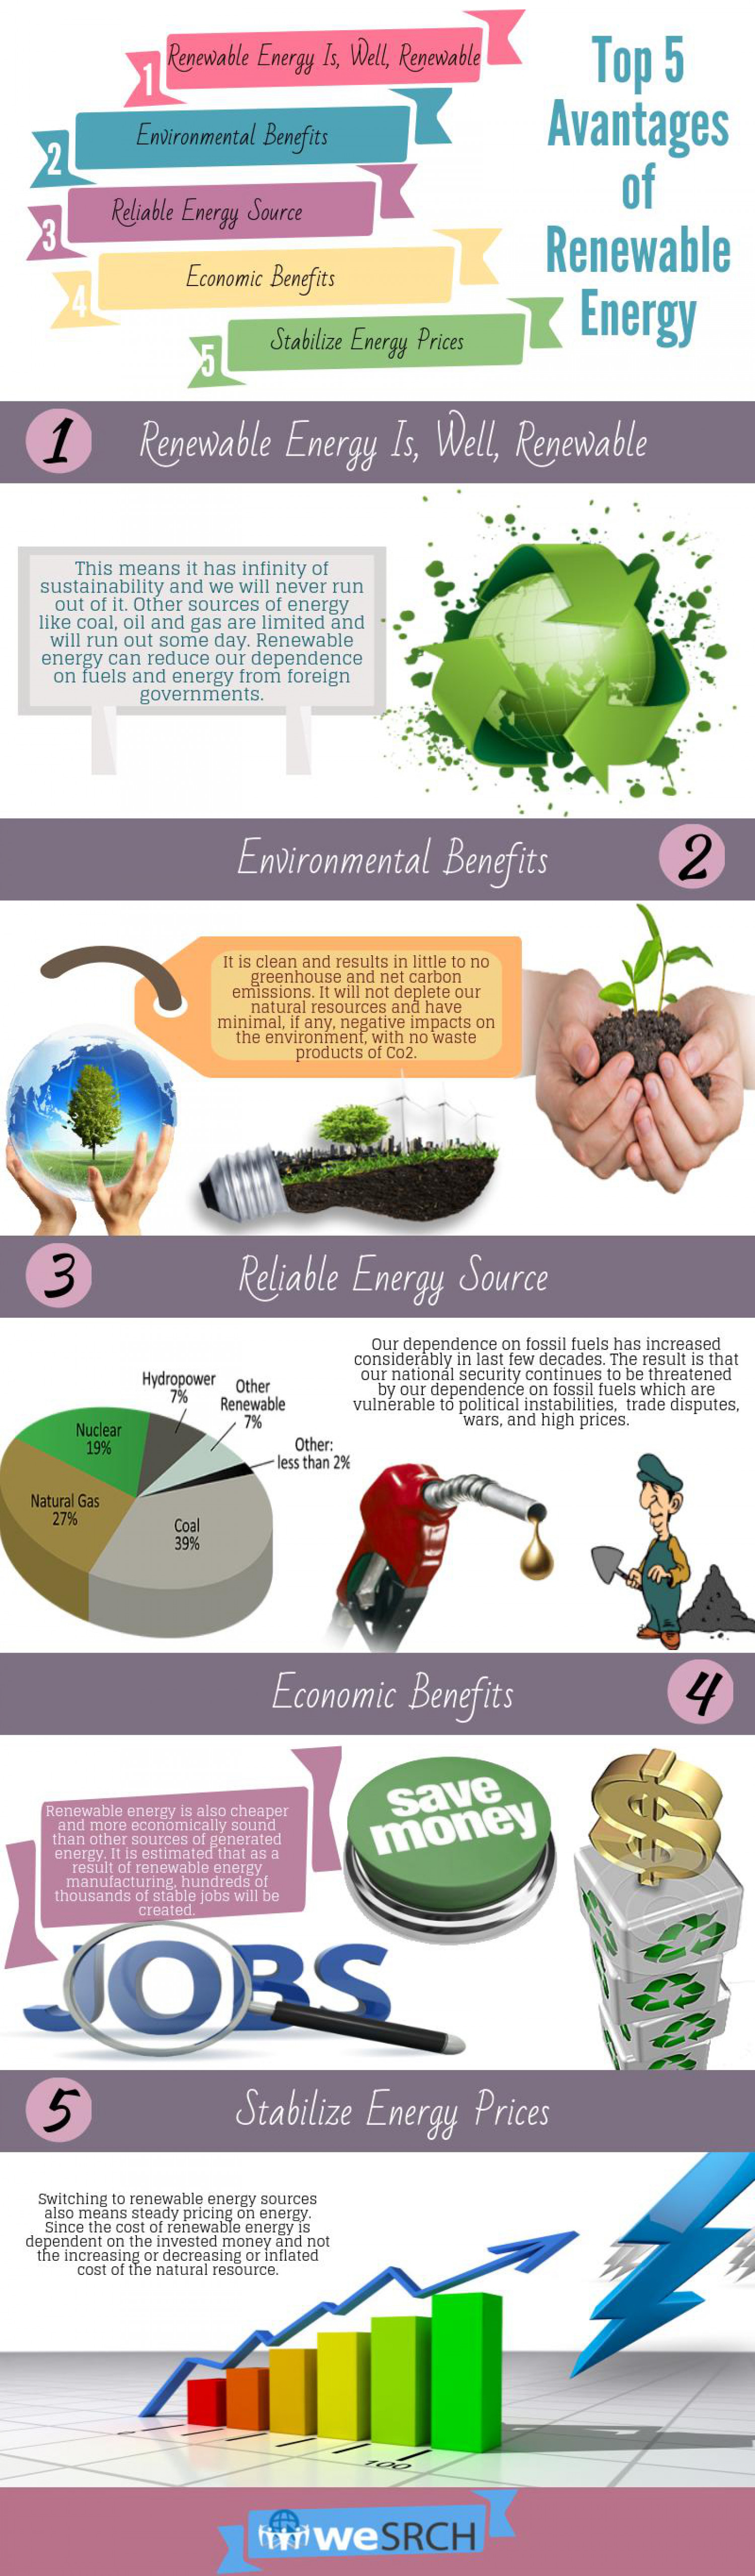 benefits of sustainability and developing the use of renewable sources of energy These countries could provide blueprints for the worldwide shift to renewable energy carbon sources worldwide of its gdp in developing renewable energy.